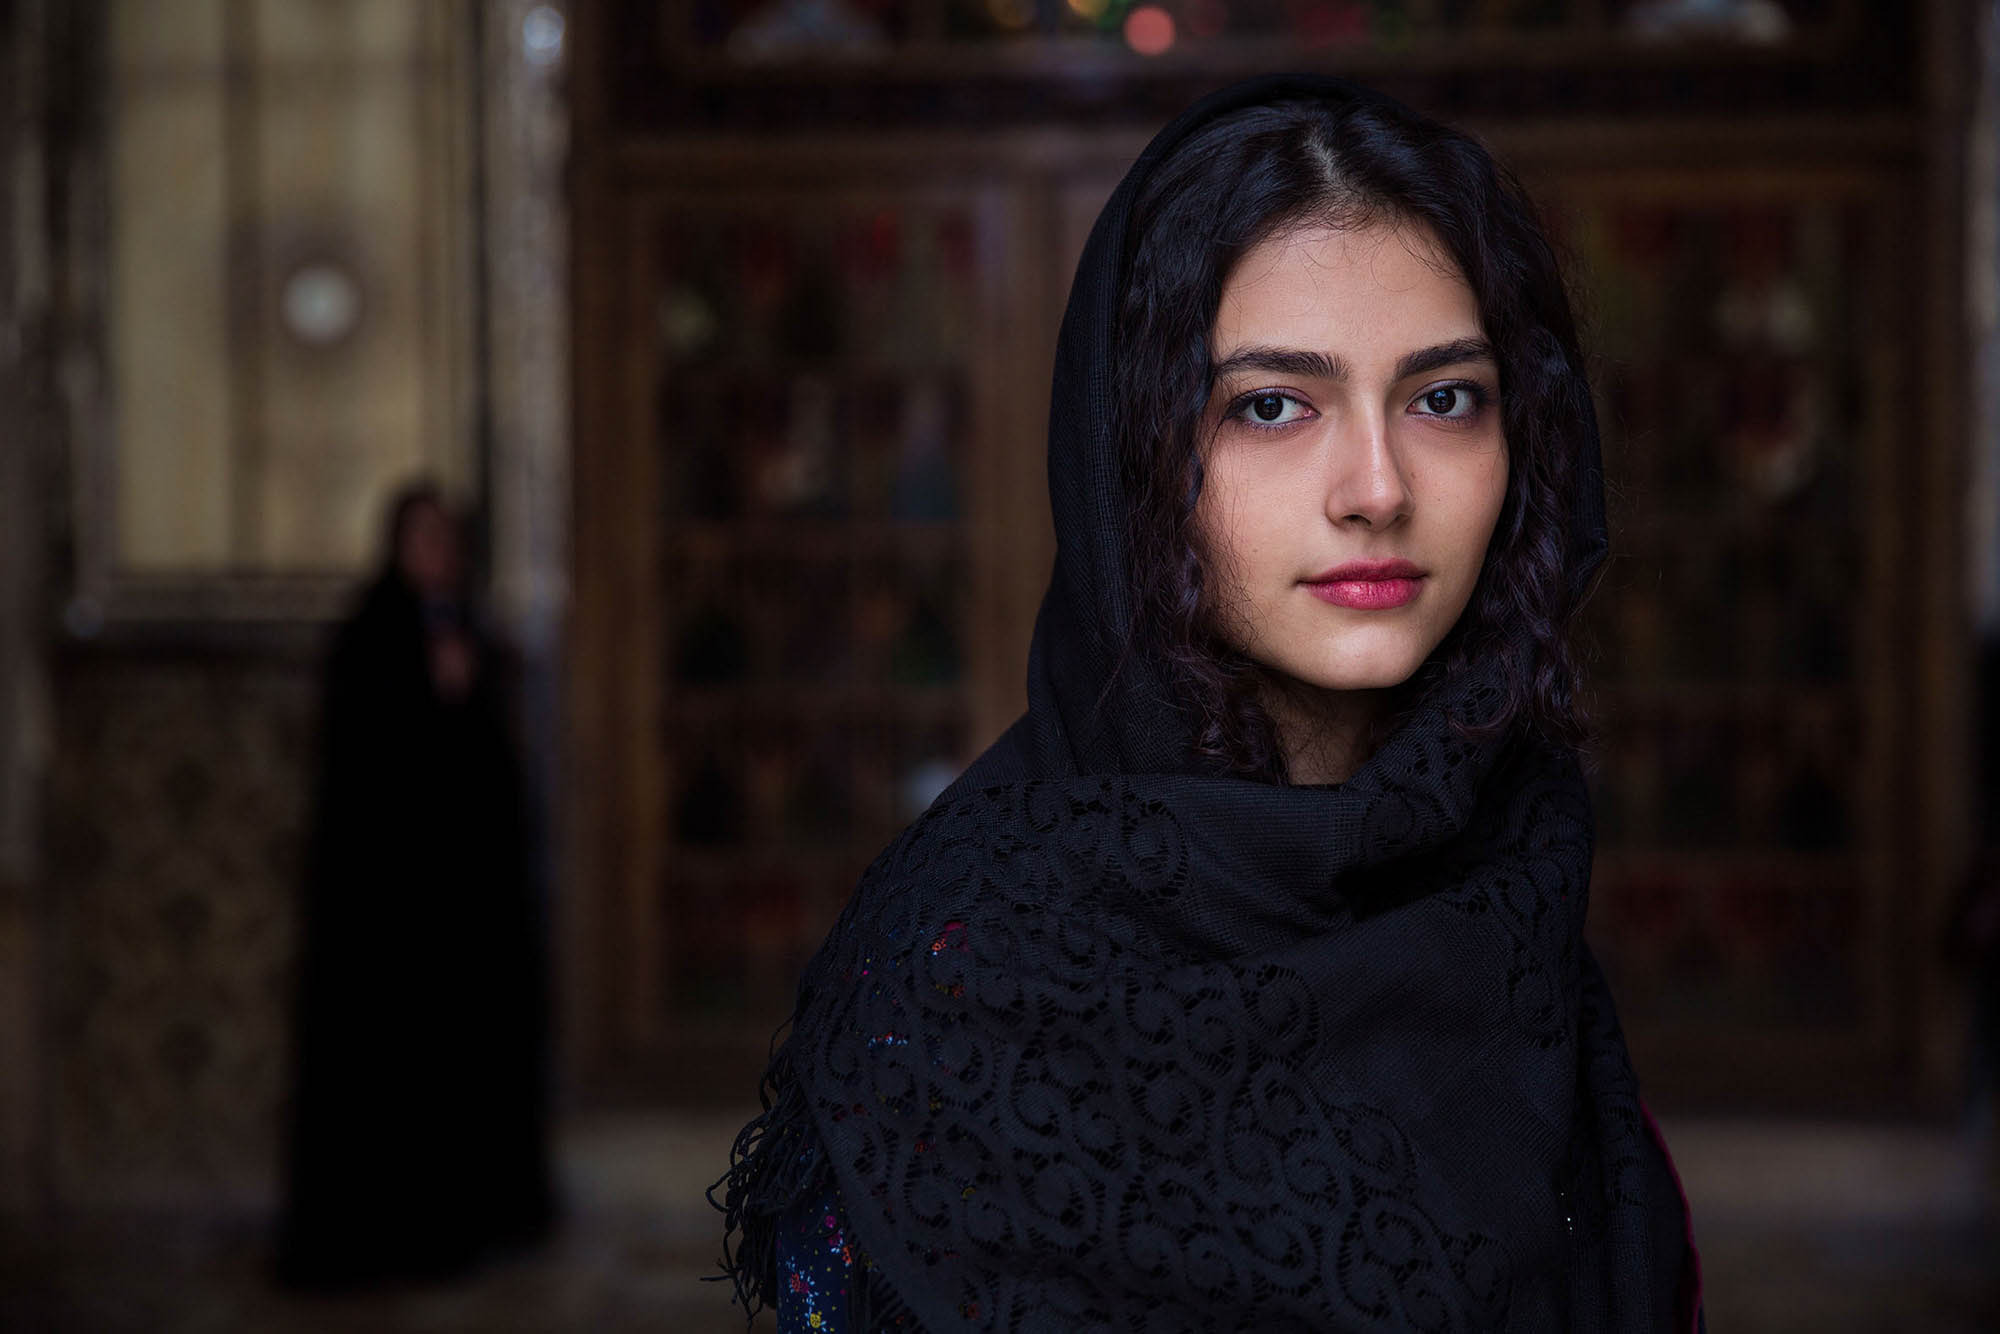 Name Not Provided - Tehran, Iran - The Atlas of Beauty - Women of the World in 500 Portraits Book by Mihaela Noroc - women empowerment